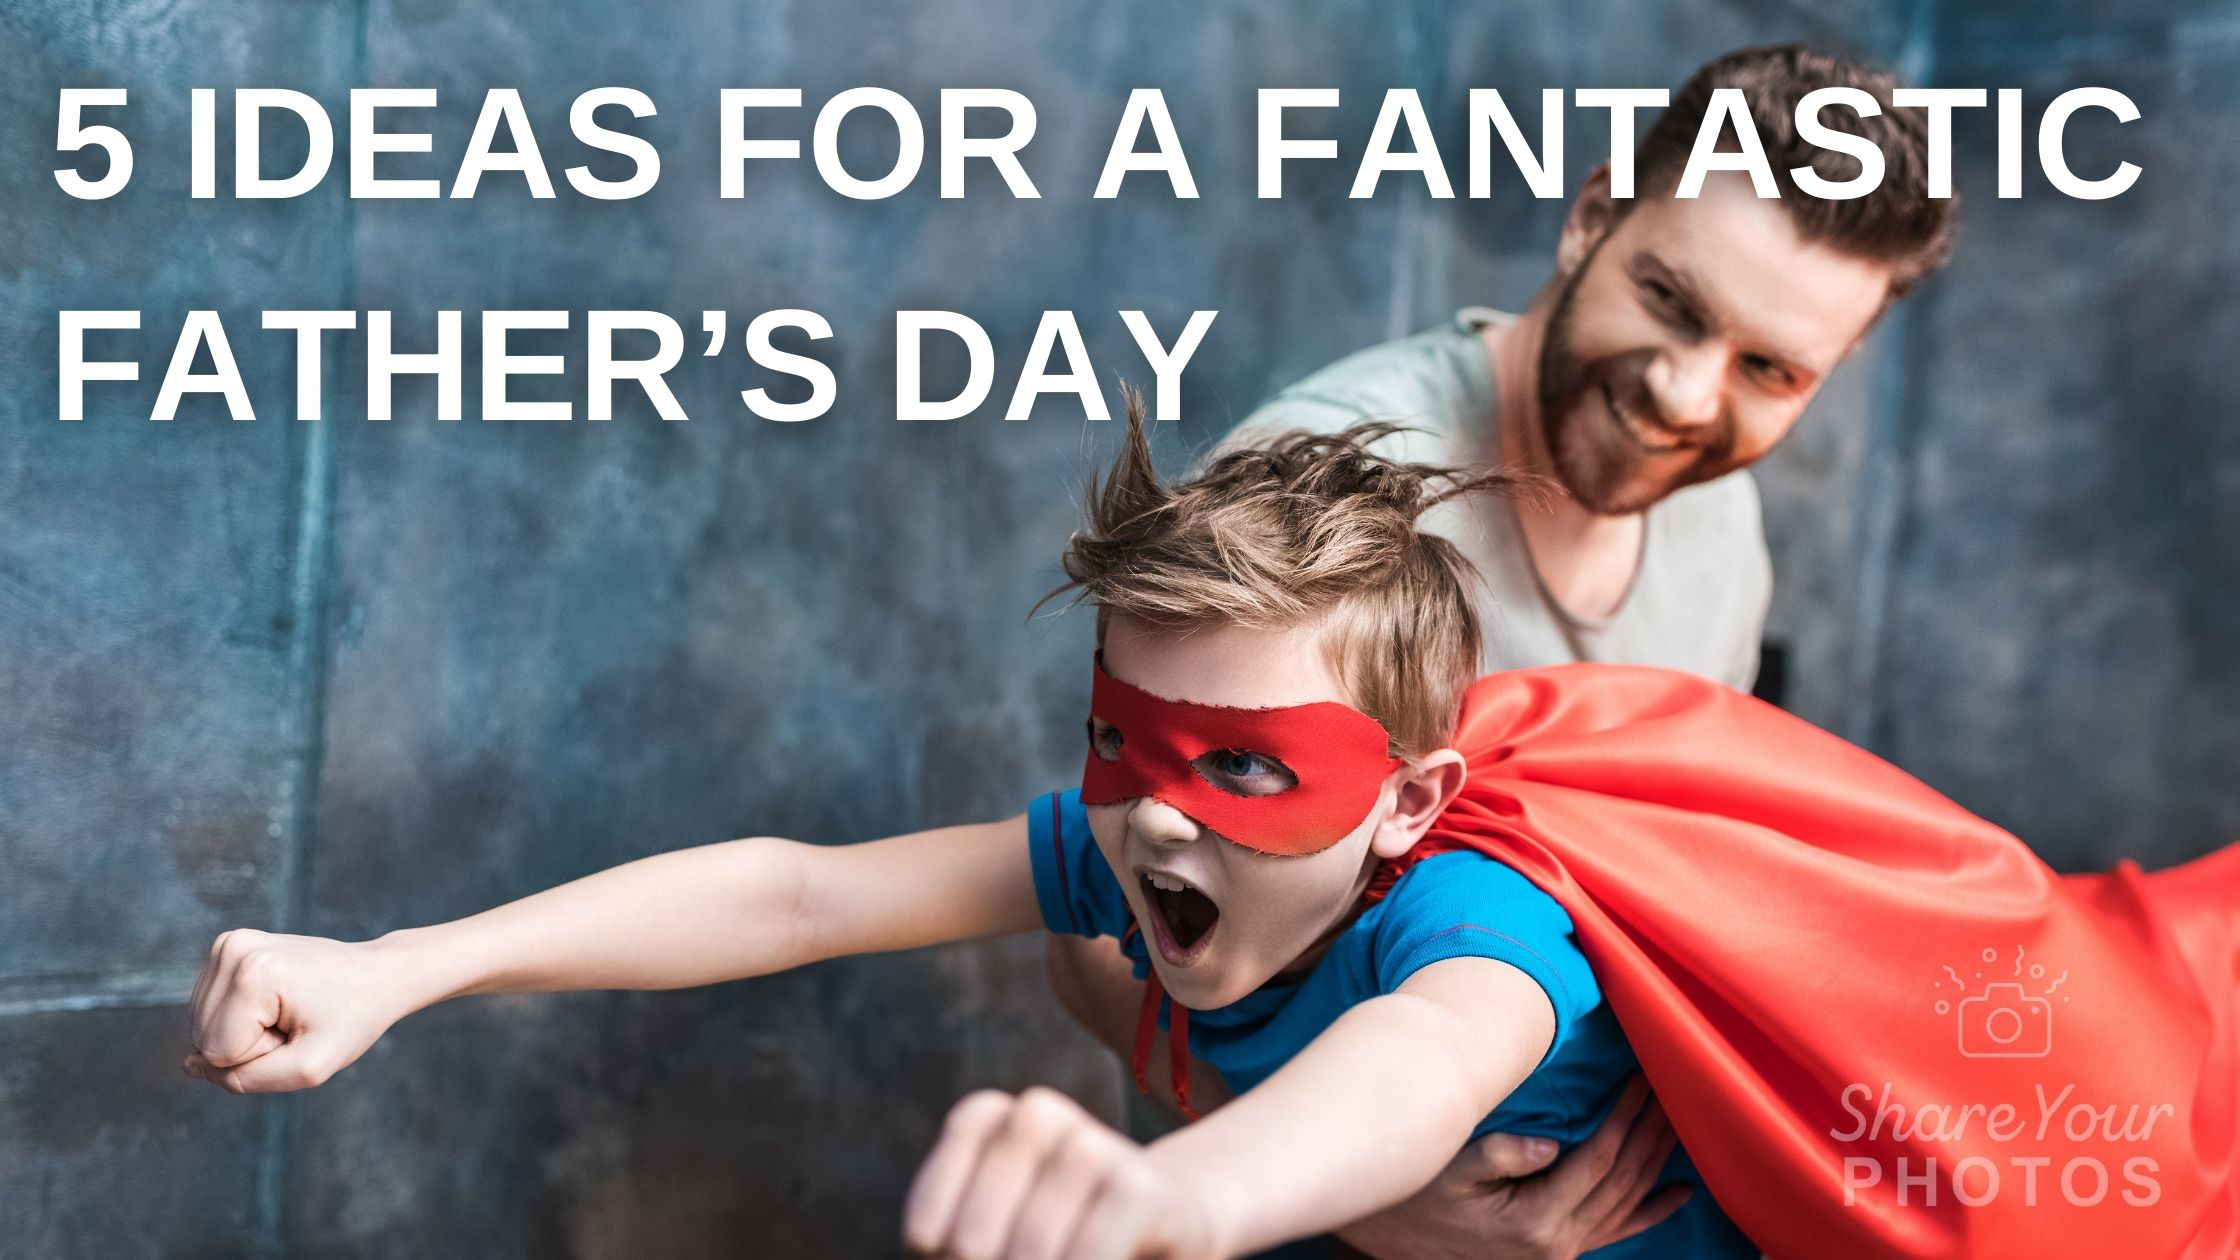 5 Ideas for a Fantastic Father's Day